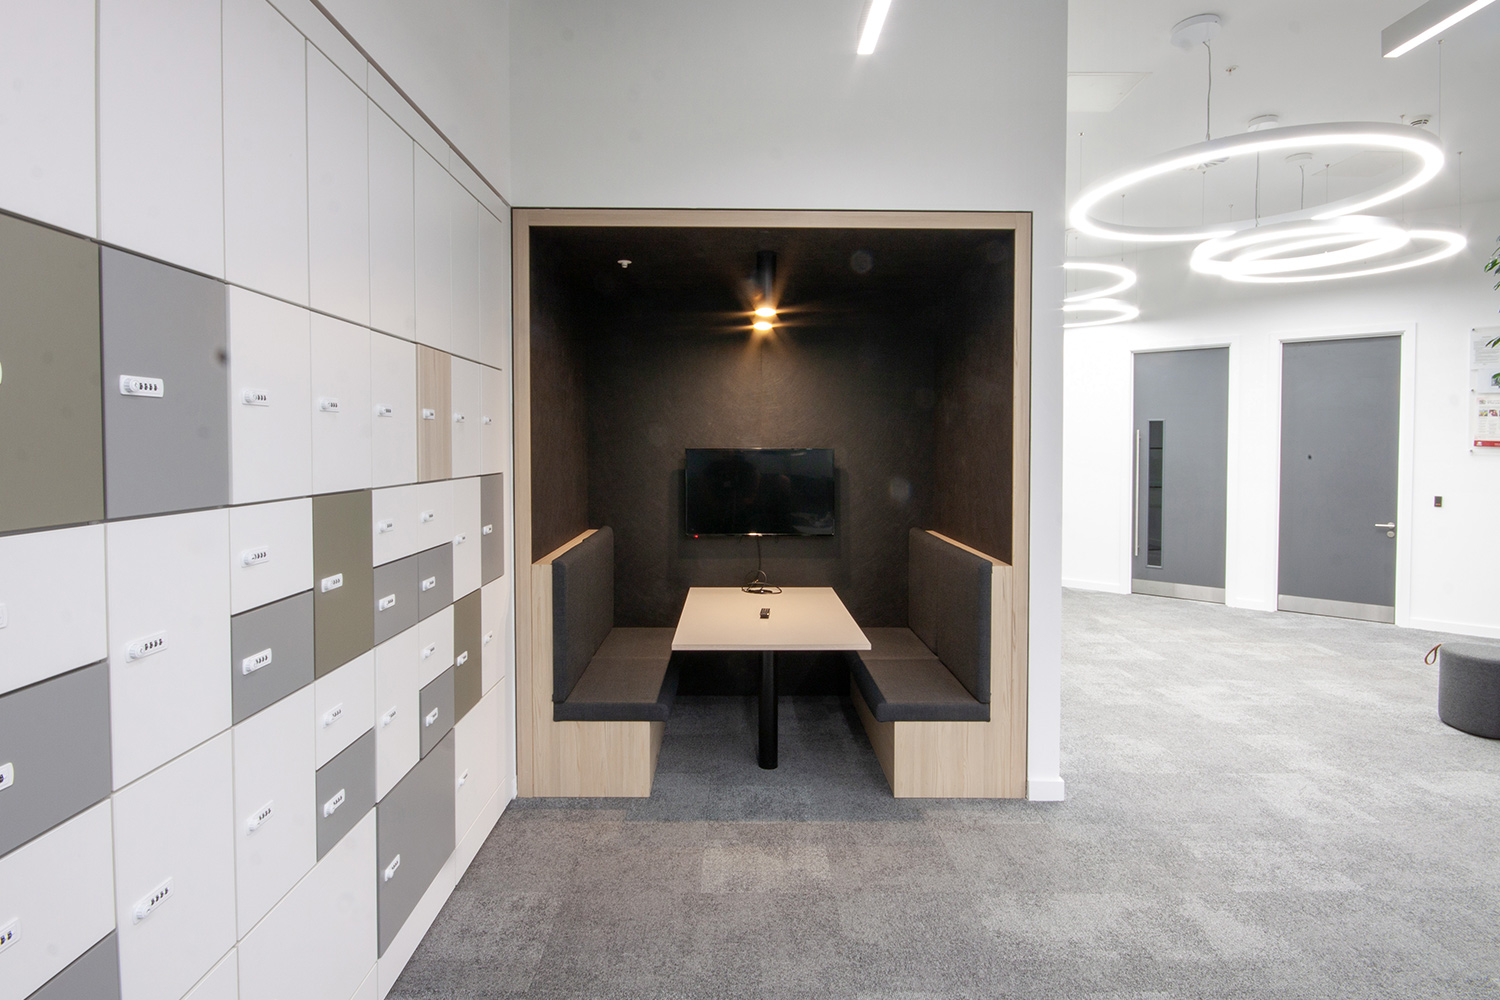 Internal photograph of break out space in BuroHappold's revamped Leeds office